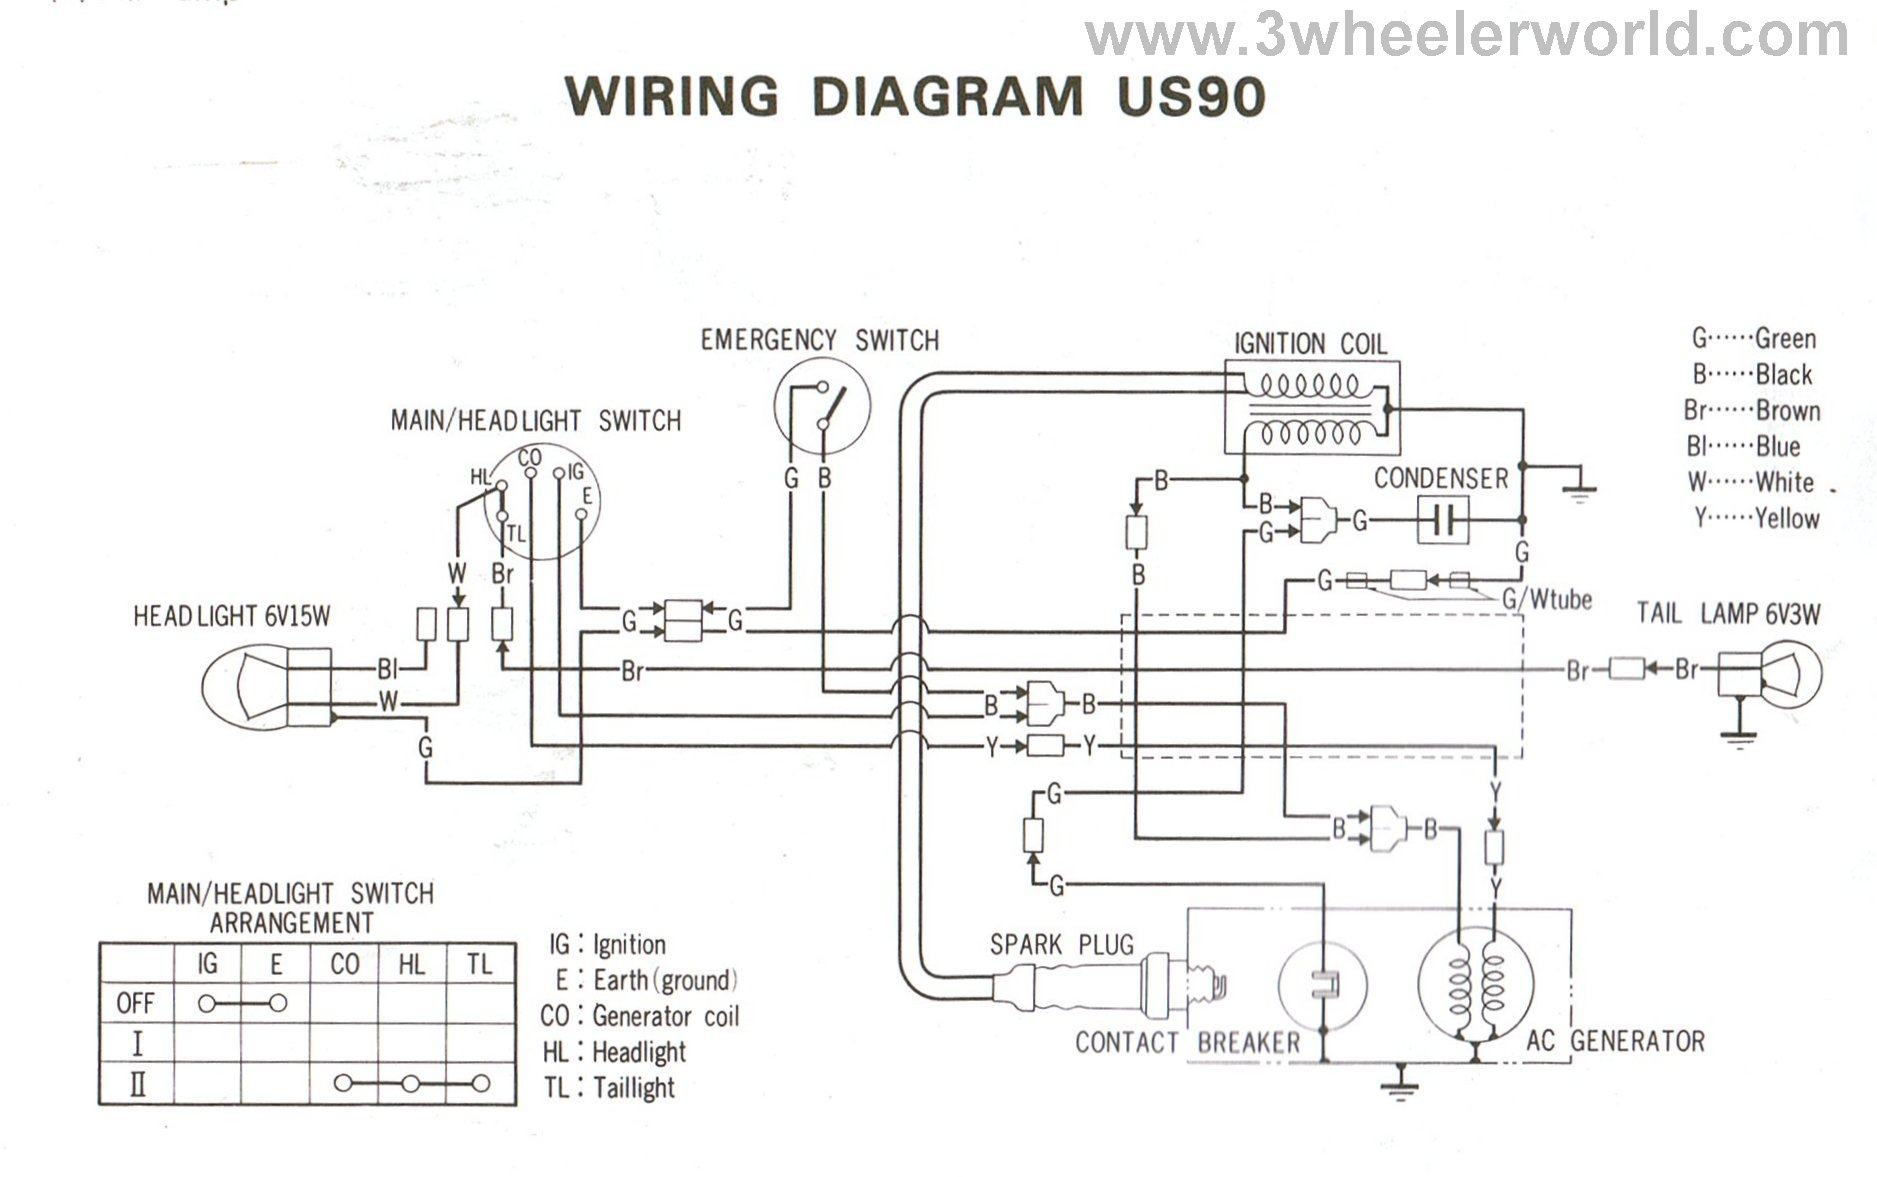 US90HM 3 wheeler world tech help honda wiring diagrams 2003 polaris predator 90 wiring diagram at n-0.co